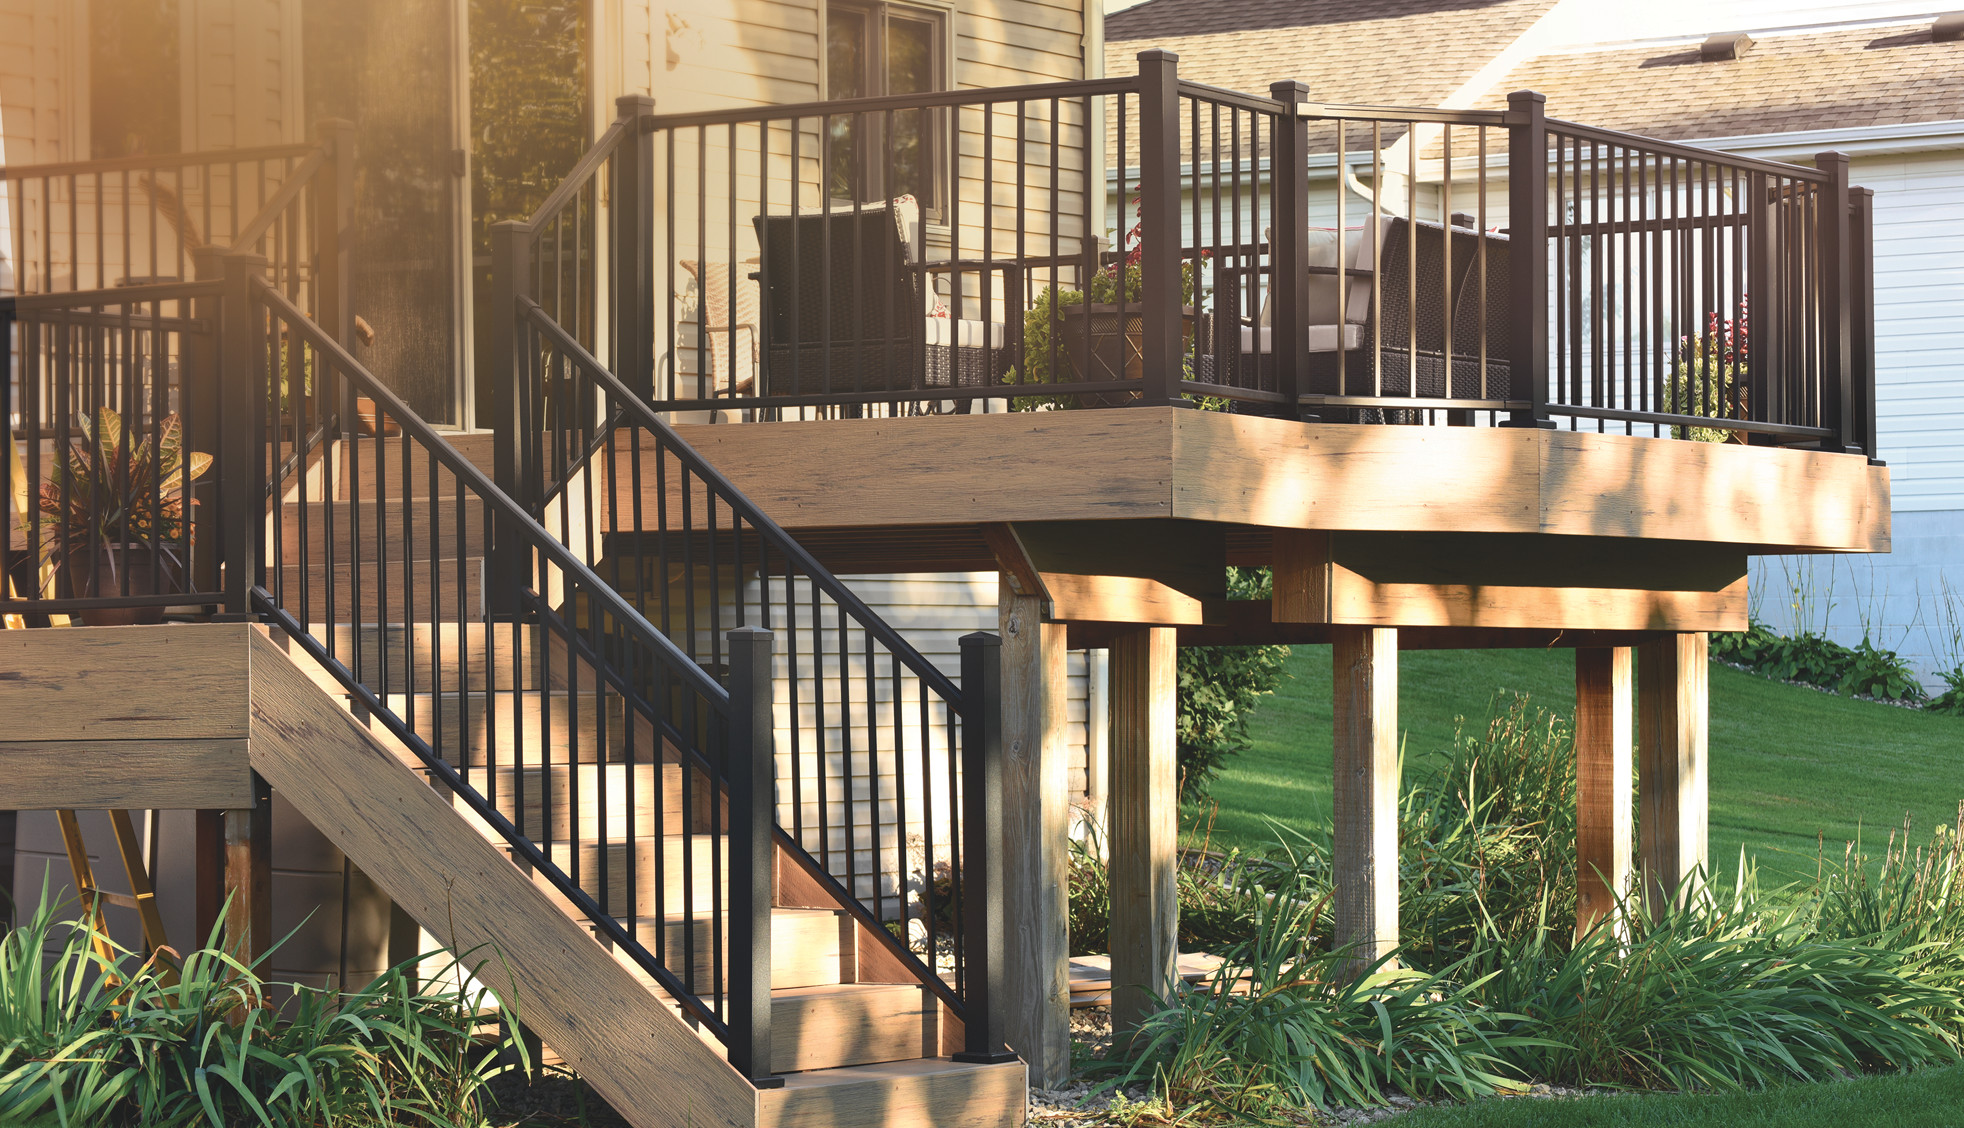 TimberTech Impression Rail Railing Collection in Black